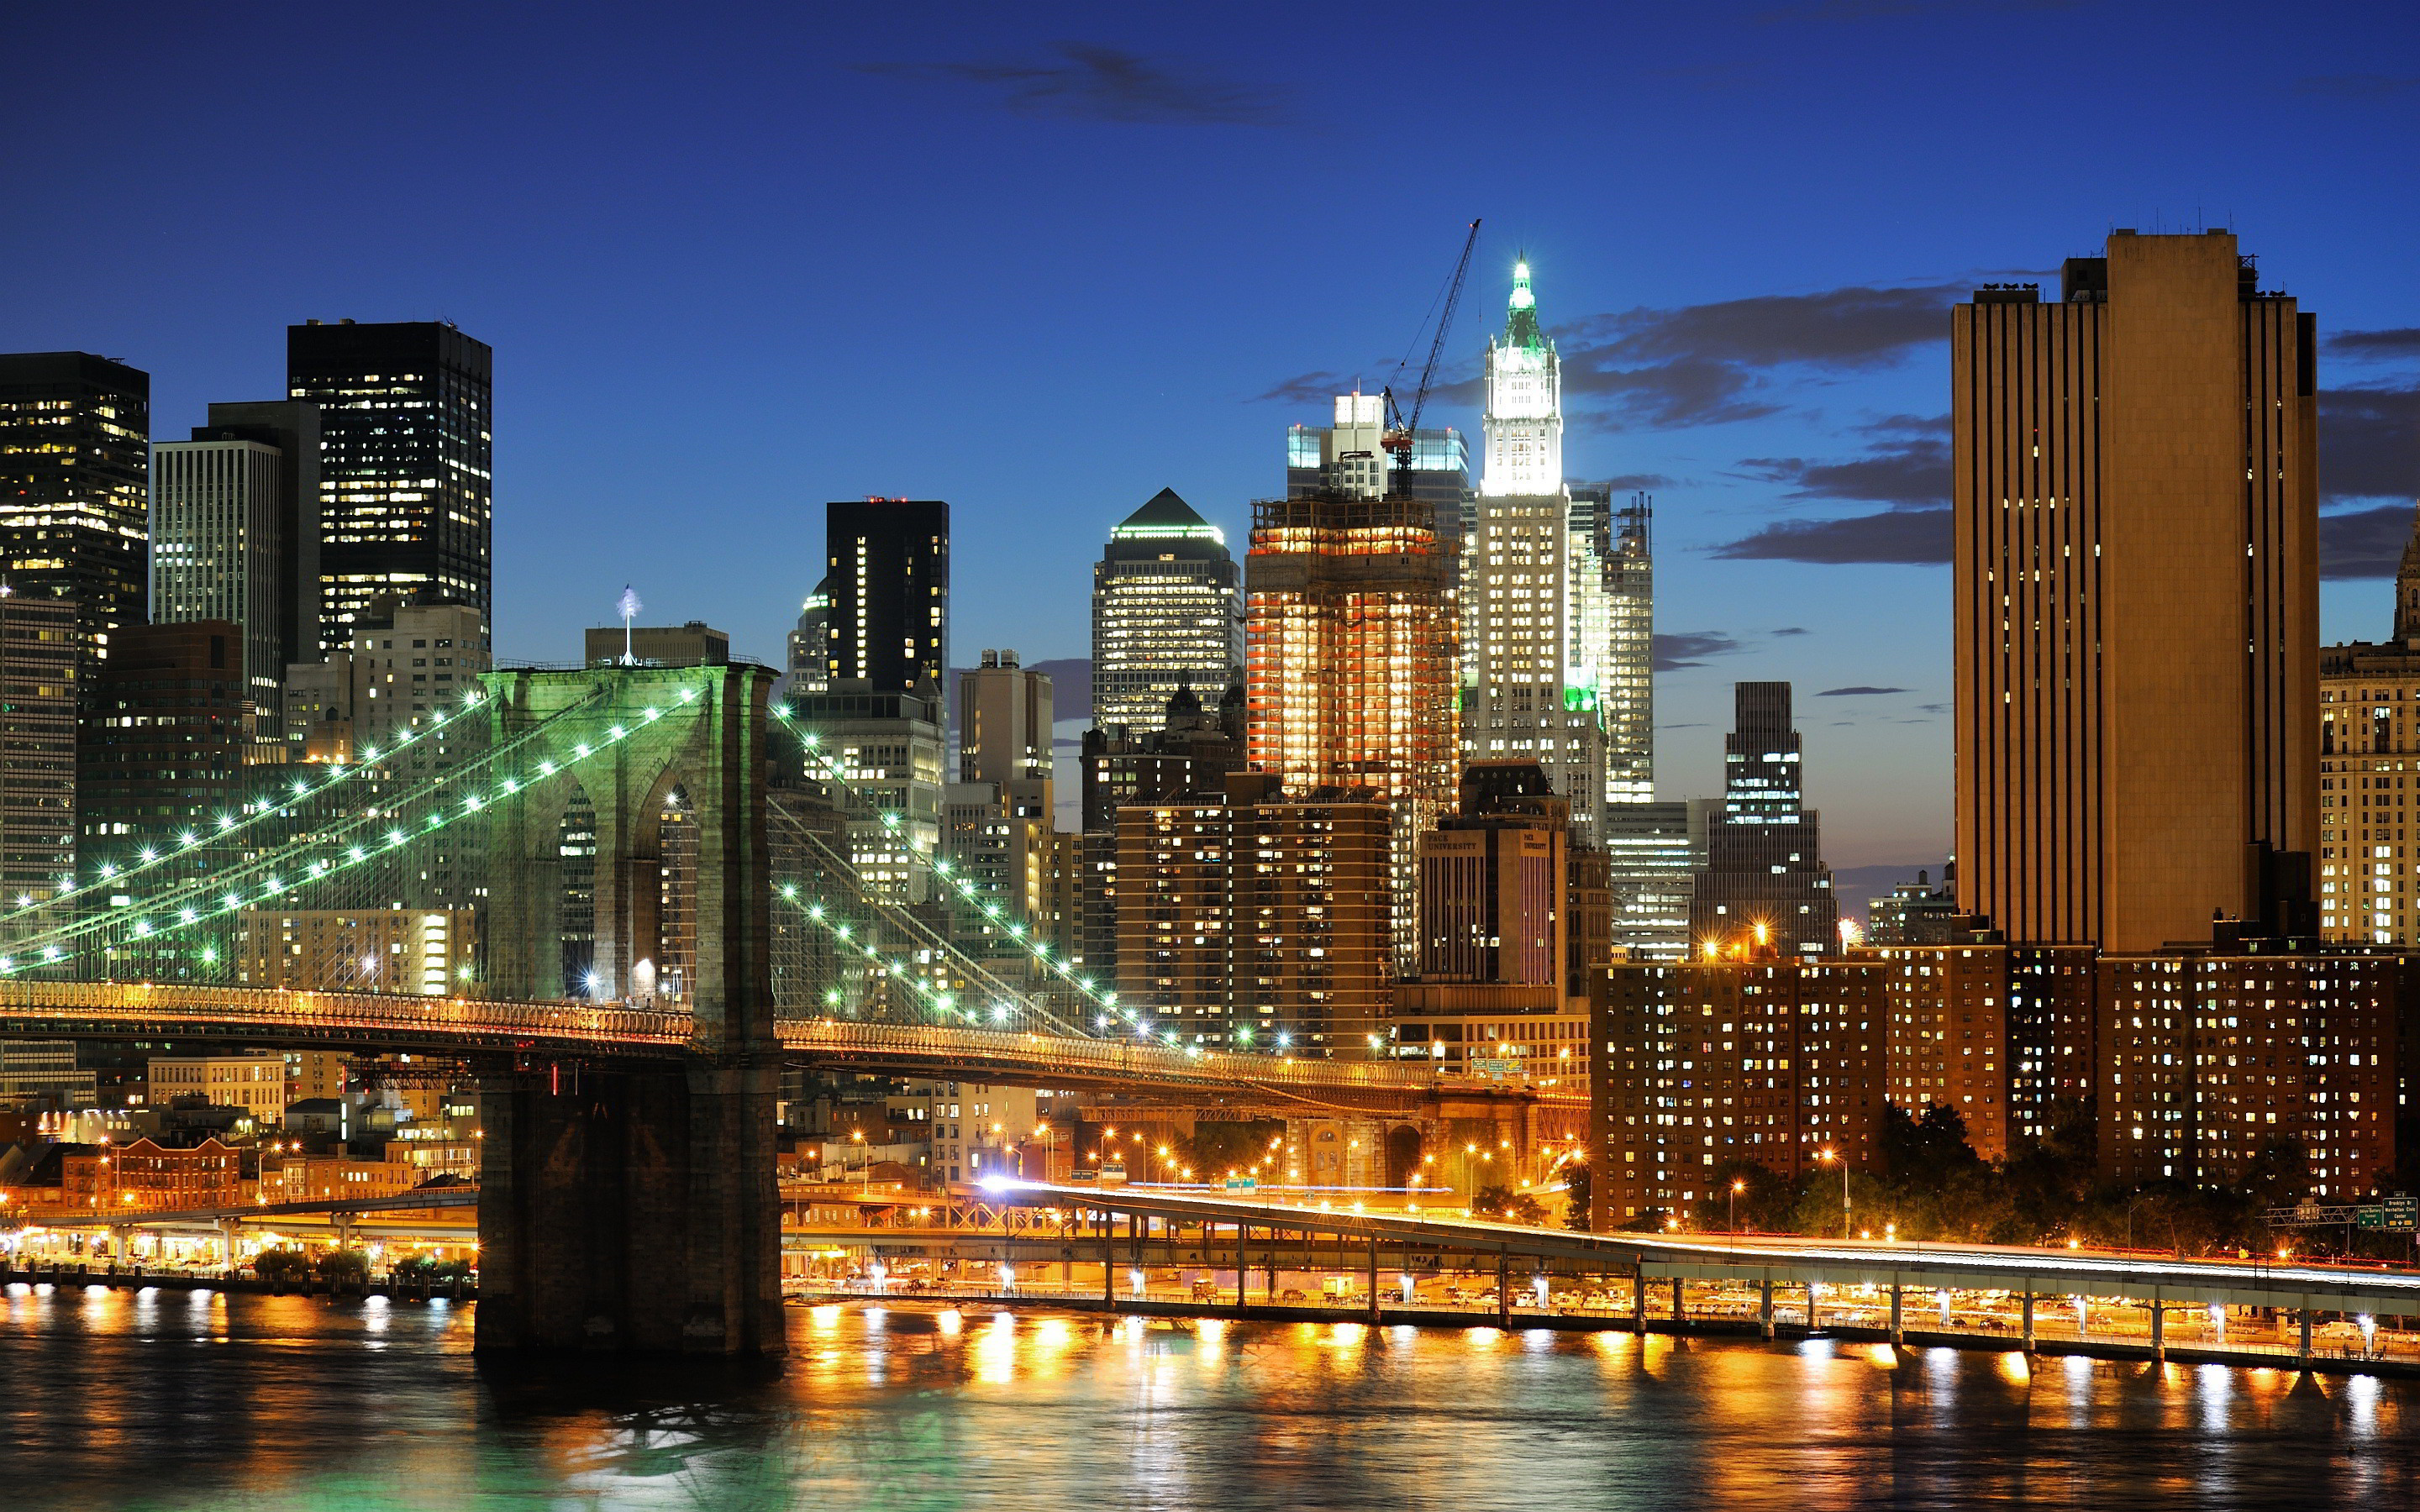 2880x1800 adorable new york city wallpapers 41 wallpapers bsnscb com .